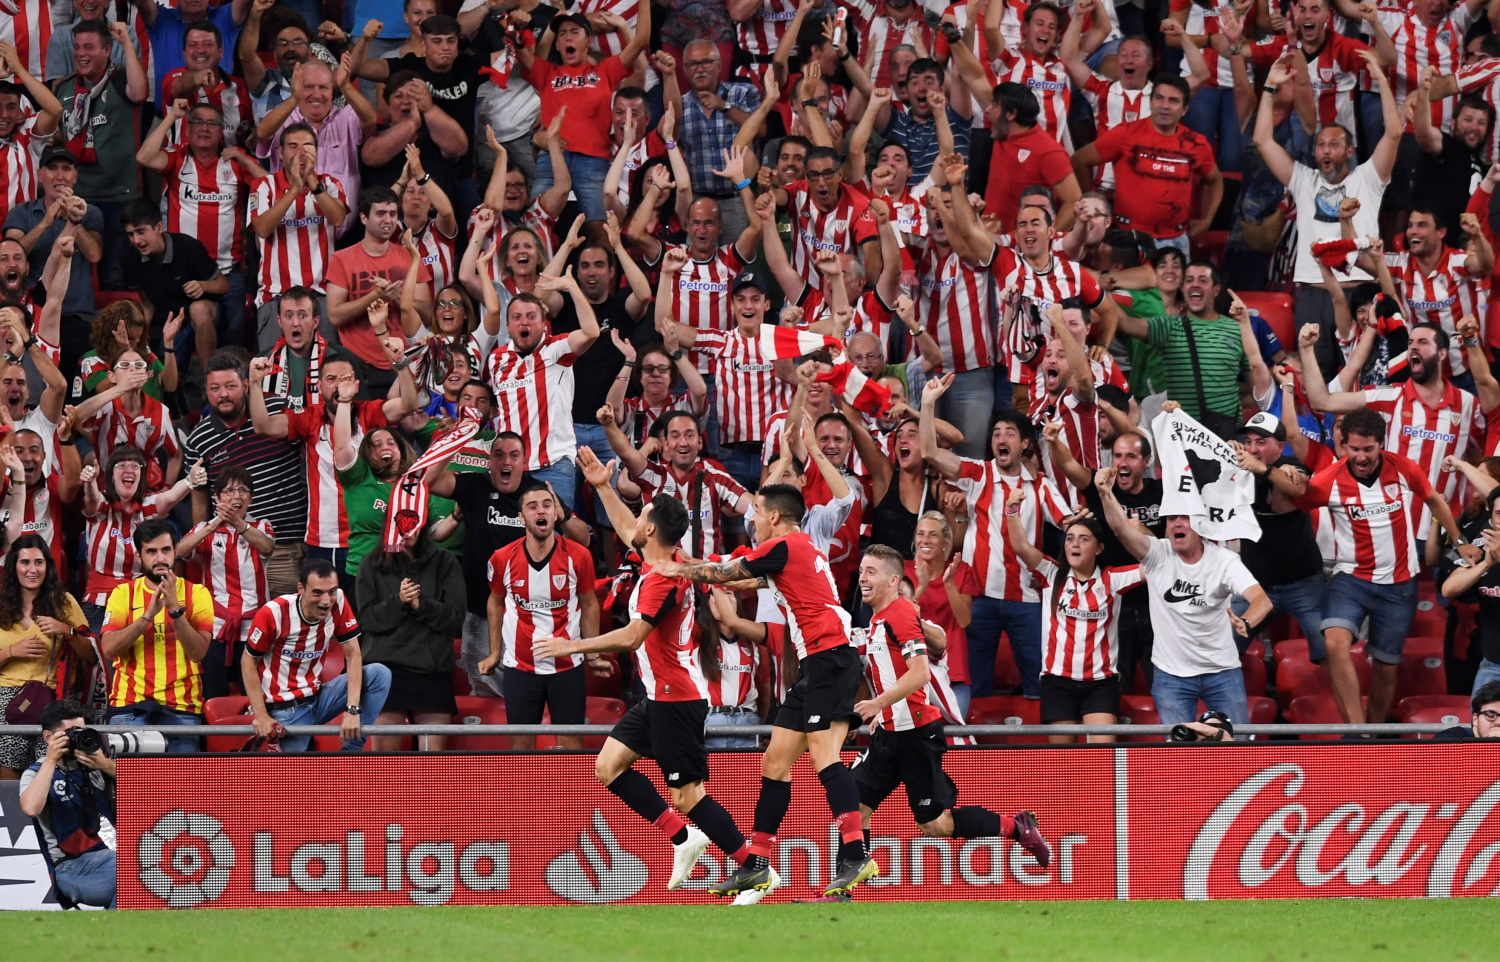 Aduriz Vows To Keep Fighting For Bilbao